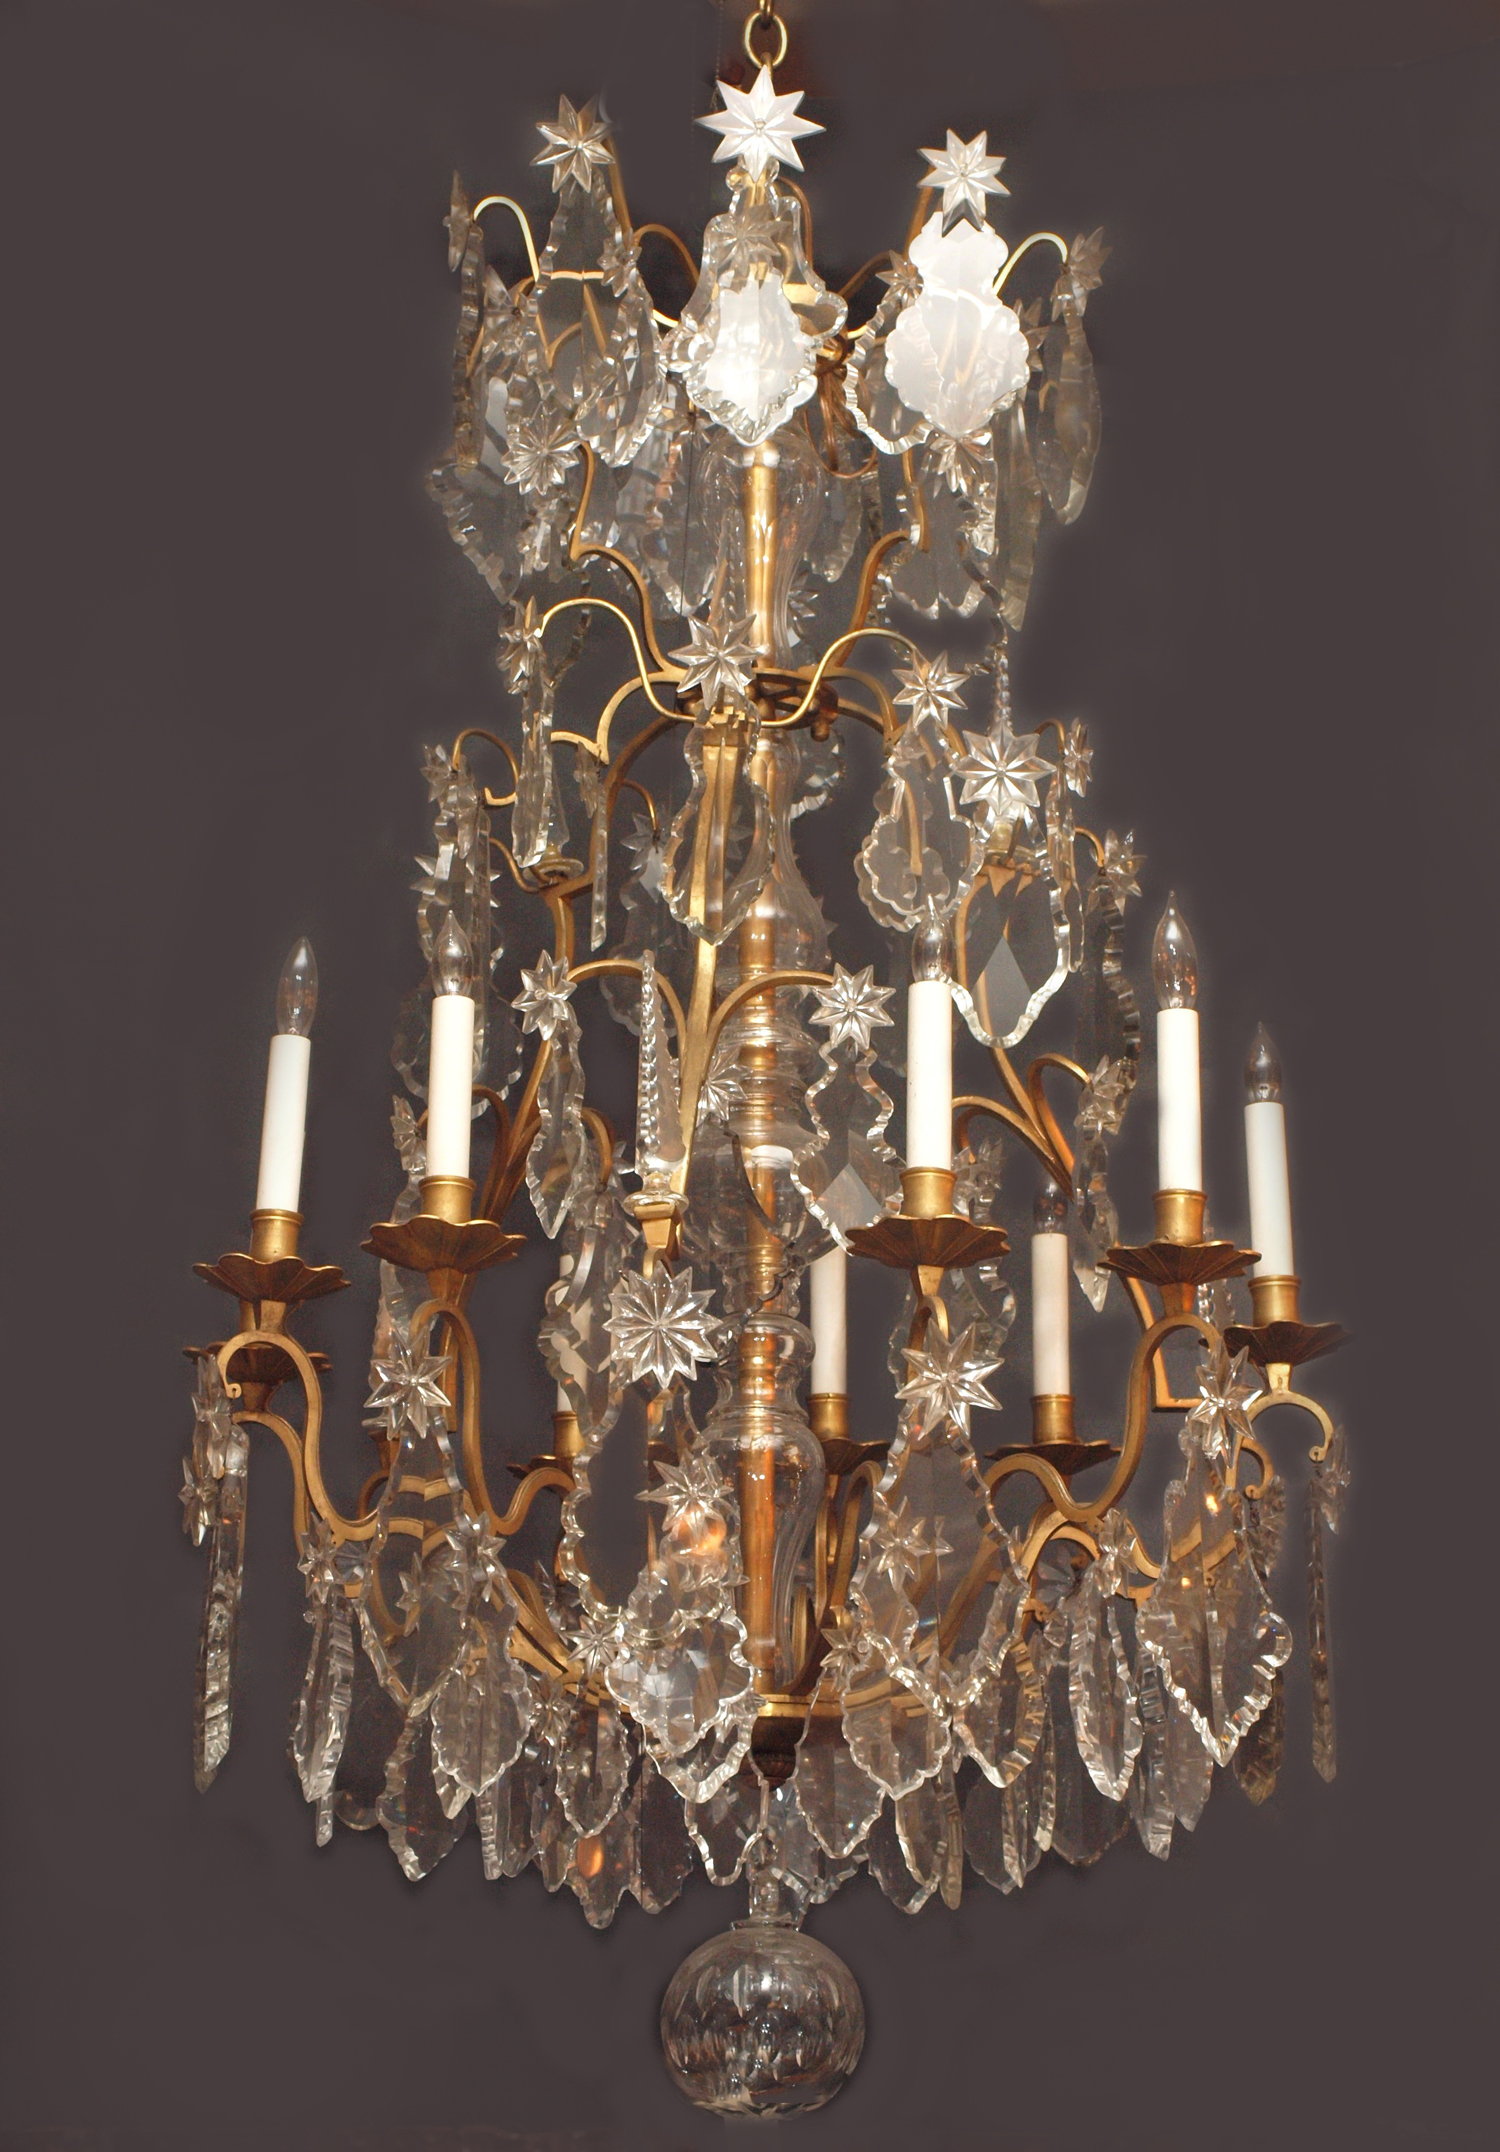 Antique French Baccarat Crystal and Ormolu Chandelier